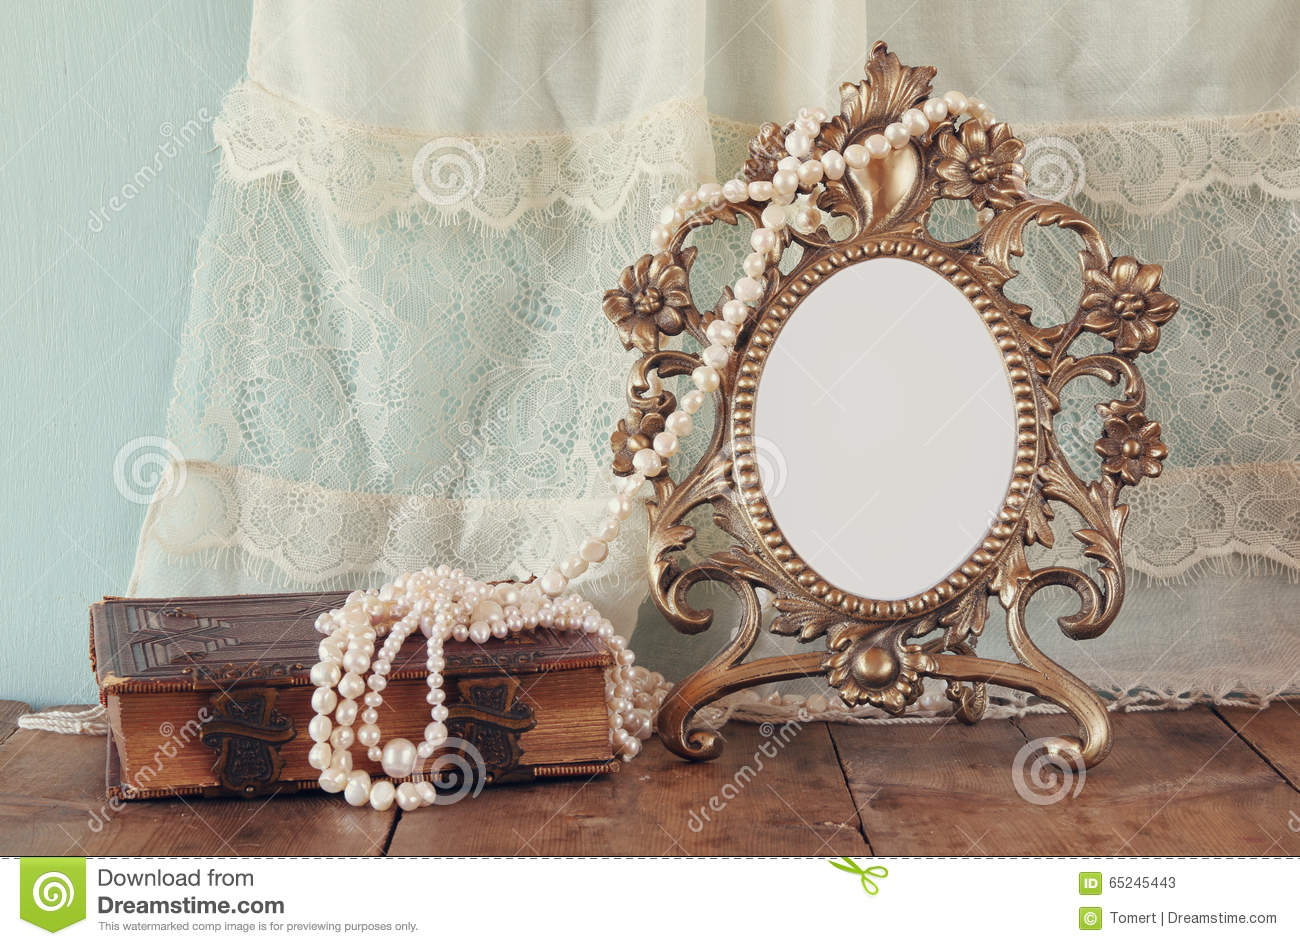 Wooden old style bed with ornaments royalty free stock for Small vintage style picture frames